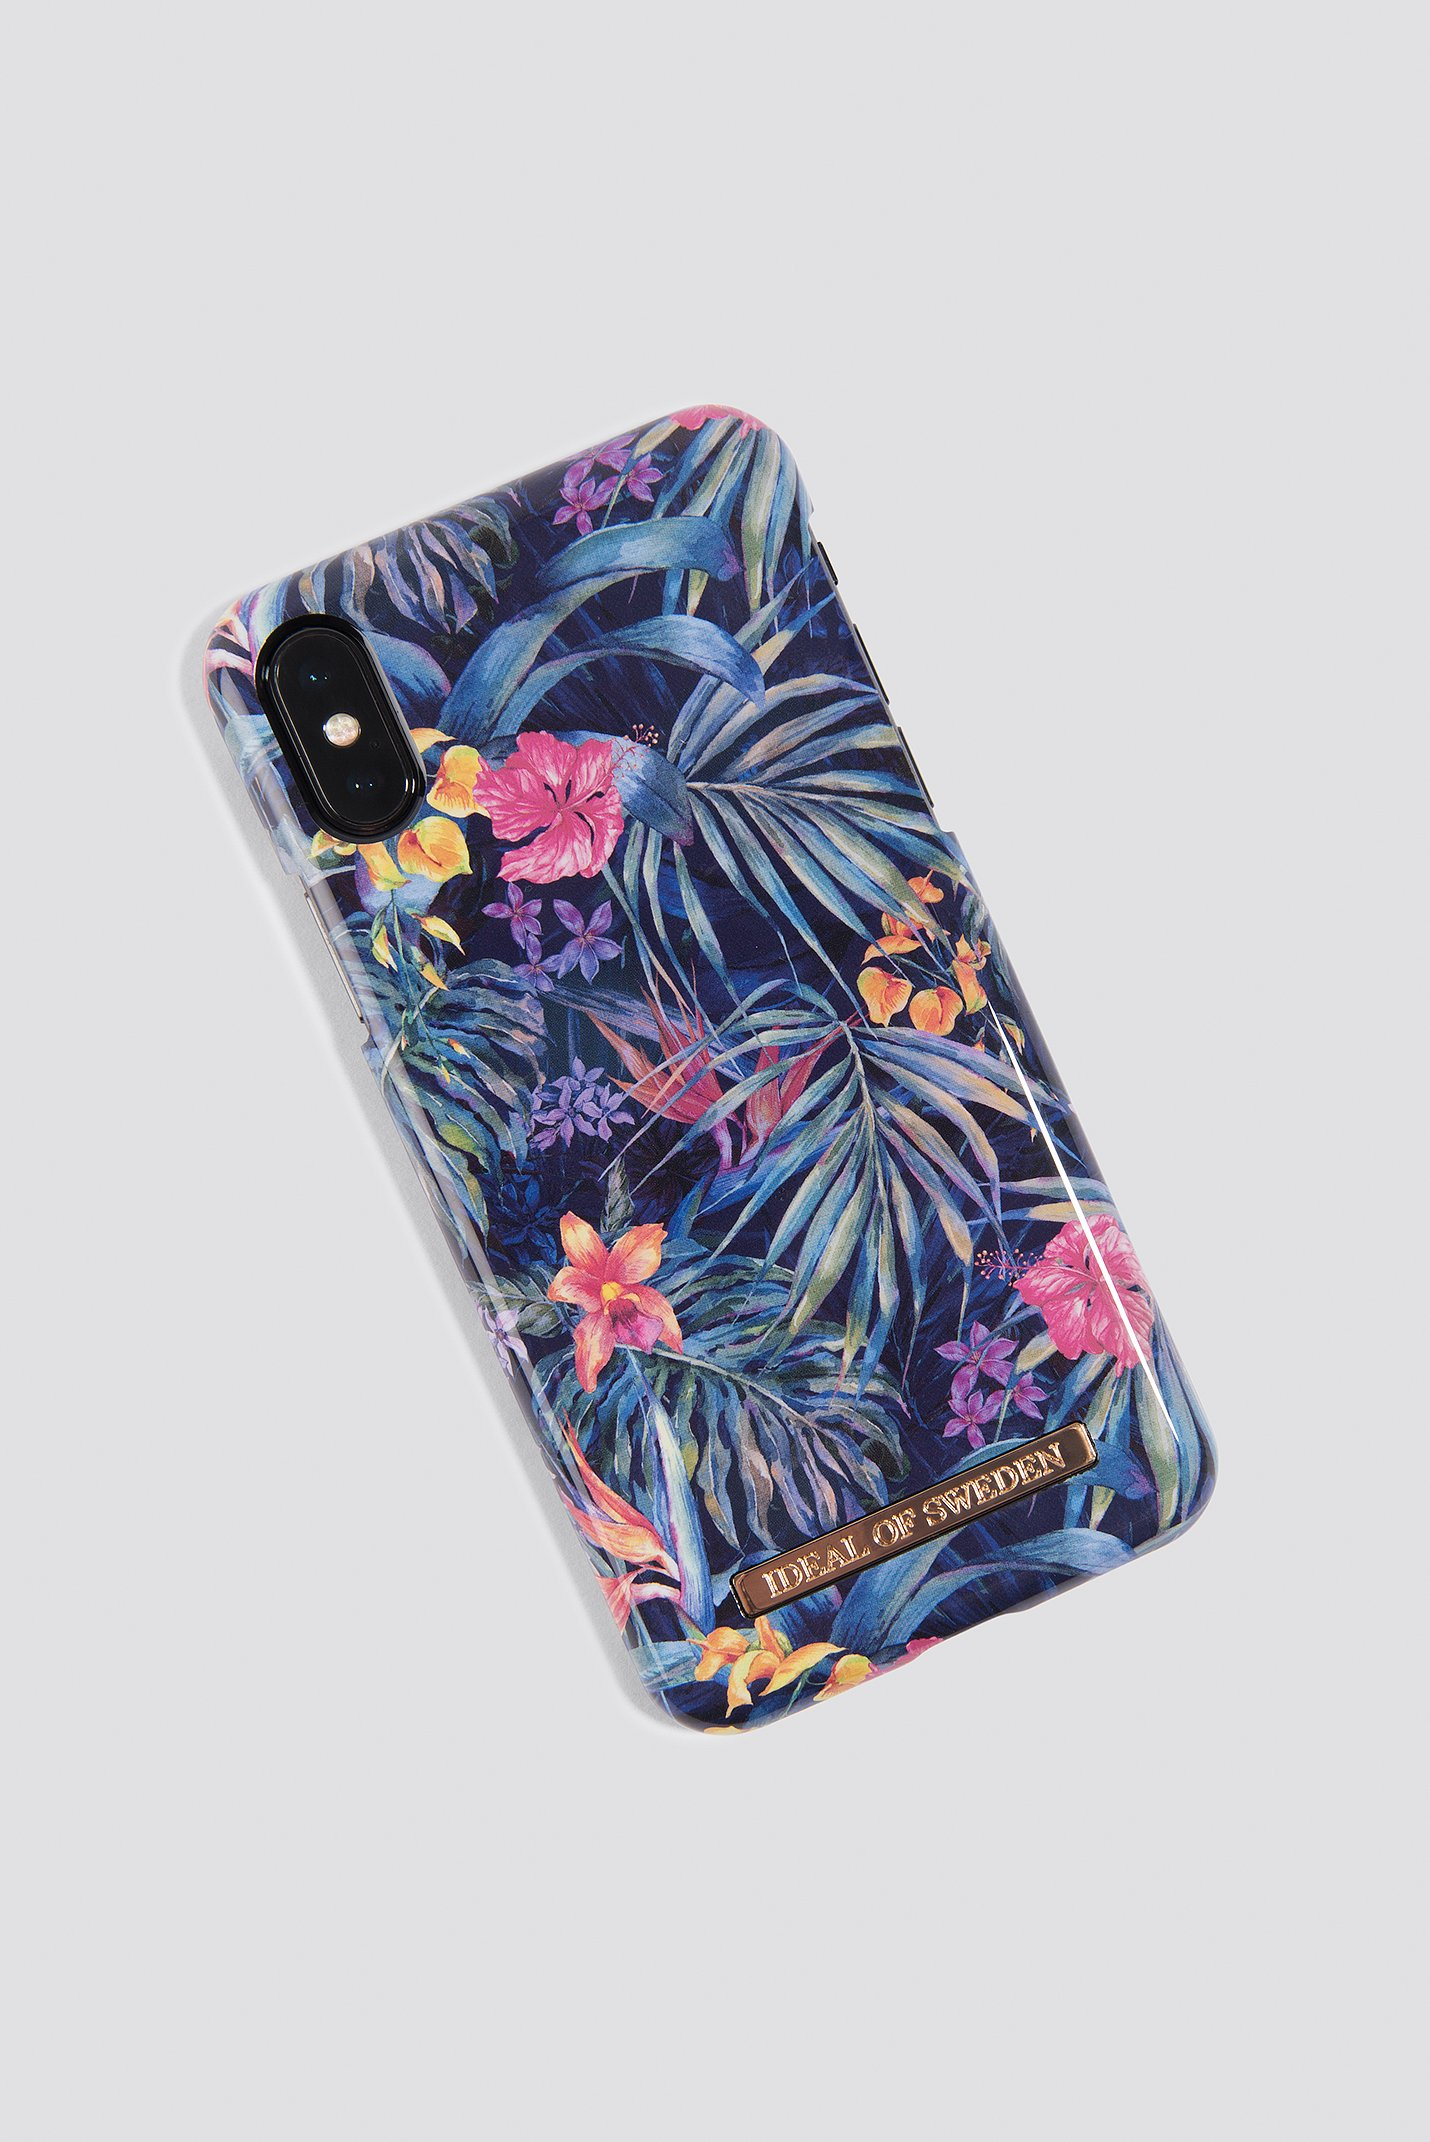 IDEAL OF SWEDEN MYSTERIOUS JUNGLE IPHONE X CASE - BLUE, MULTICOLOR